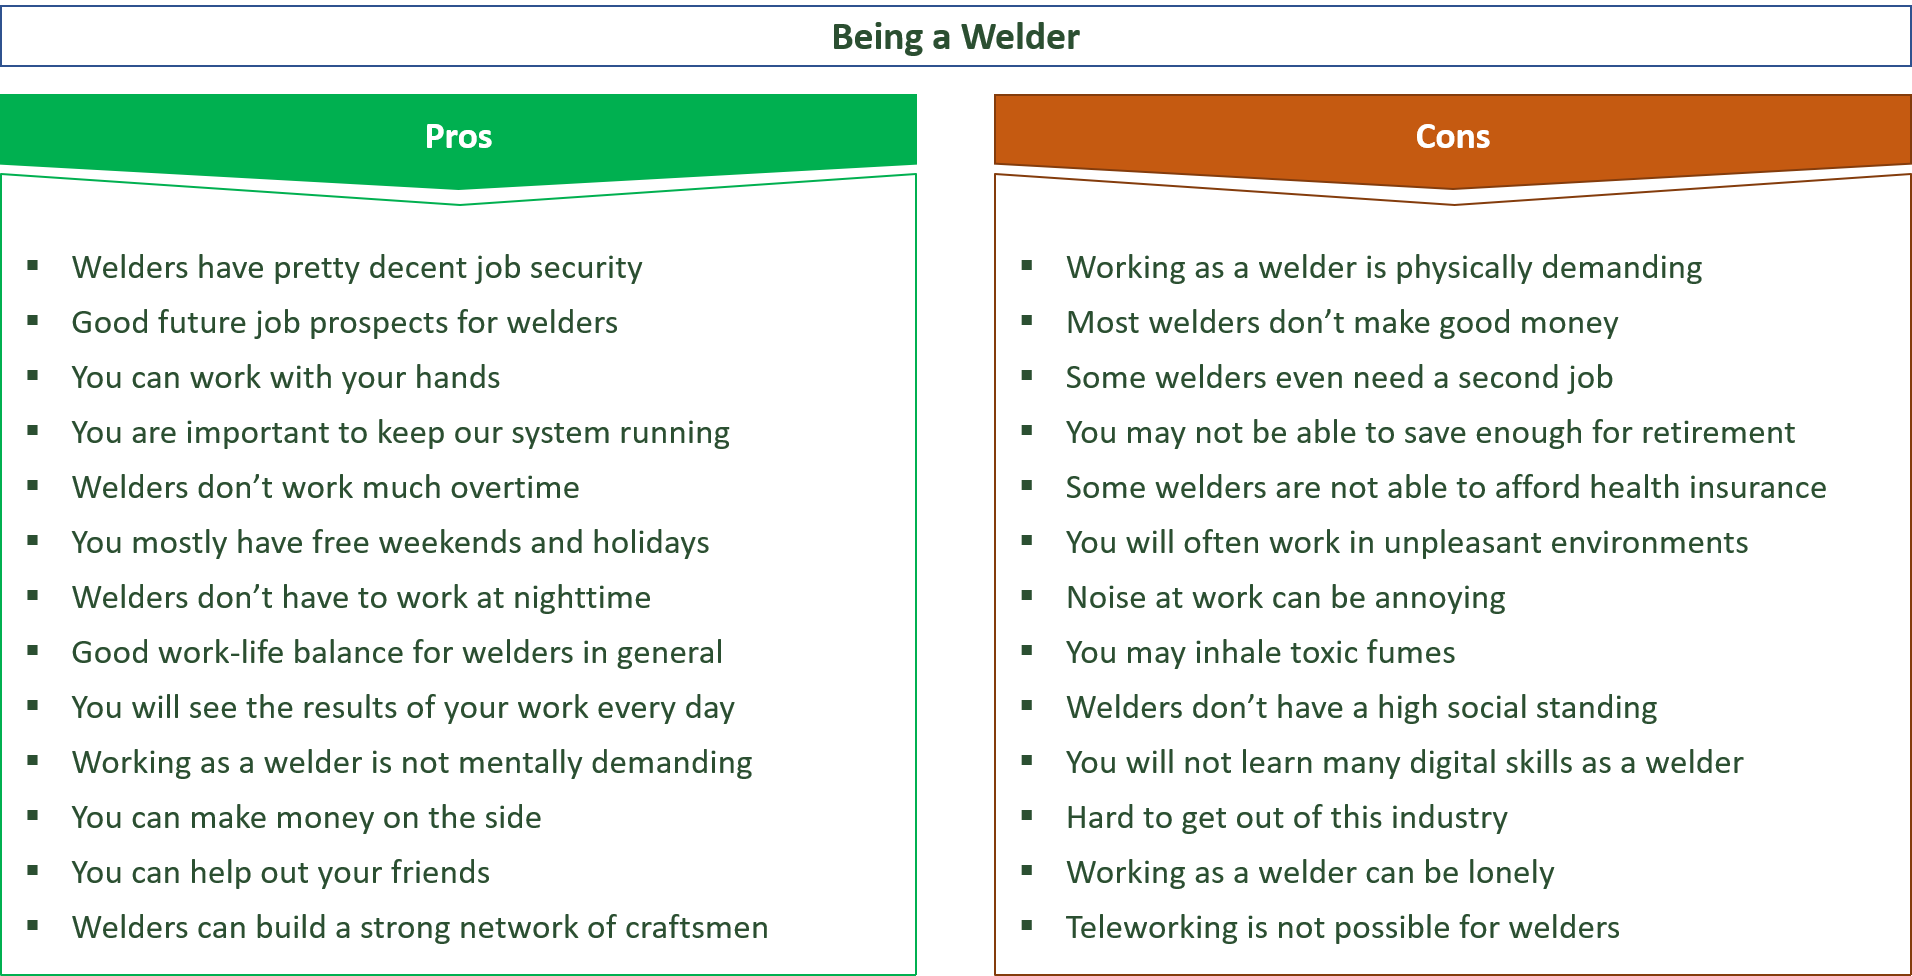 advantages and disadvantages of being a welder